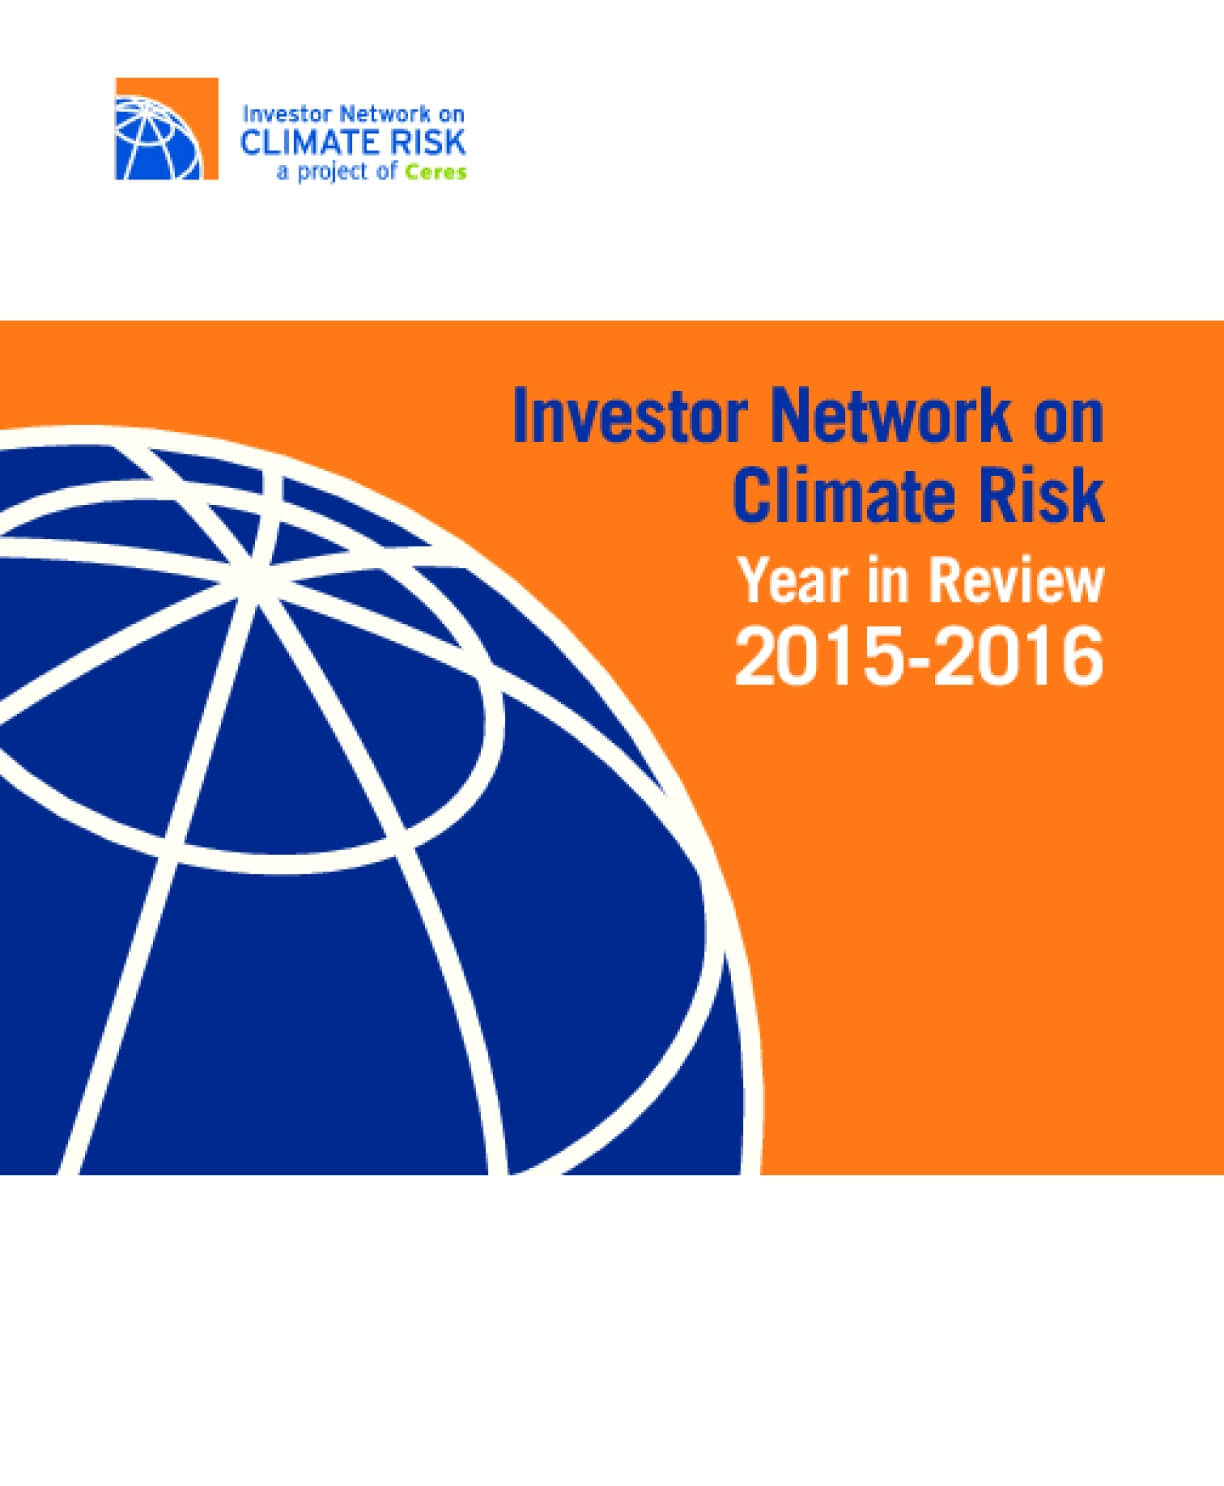 Investor Network on Climate Risk Year in Review 2015-2016